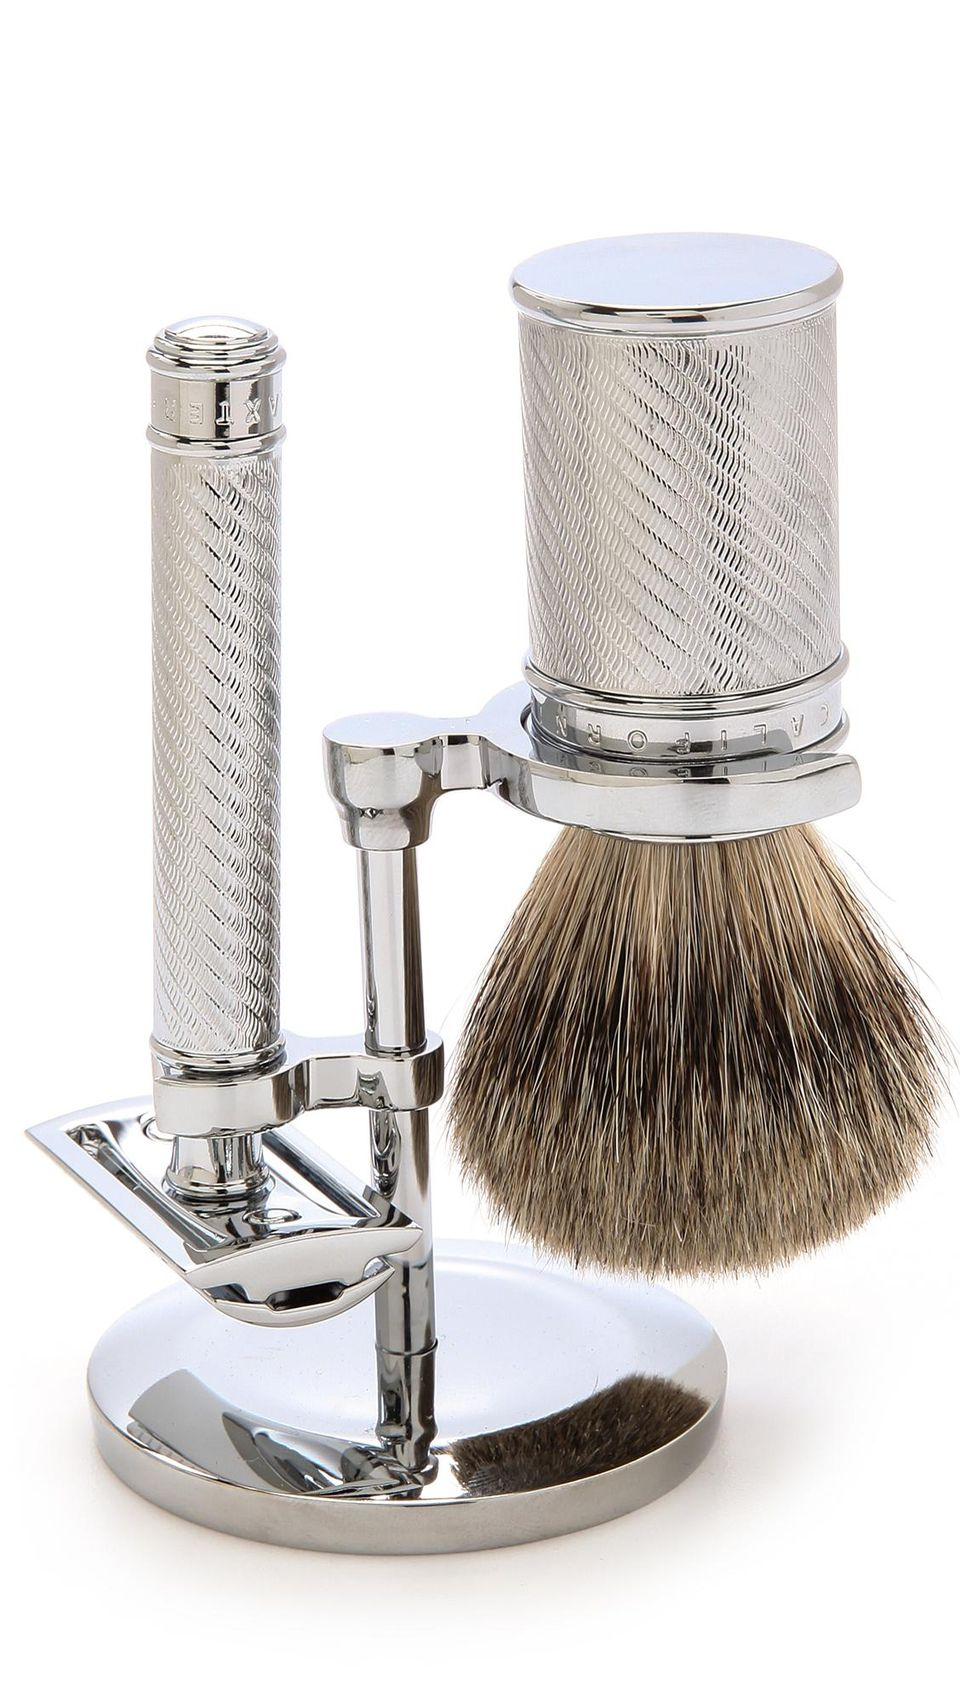 <p>You want only the best for your dad's face with this Baxter of California Razor Set,{&nbsp;} available now for $260. (Image:{&nbsp;} EAST DANE){&nbsp;}</p><p></p>